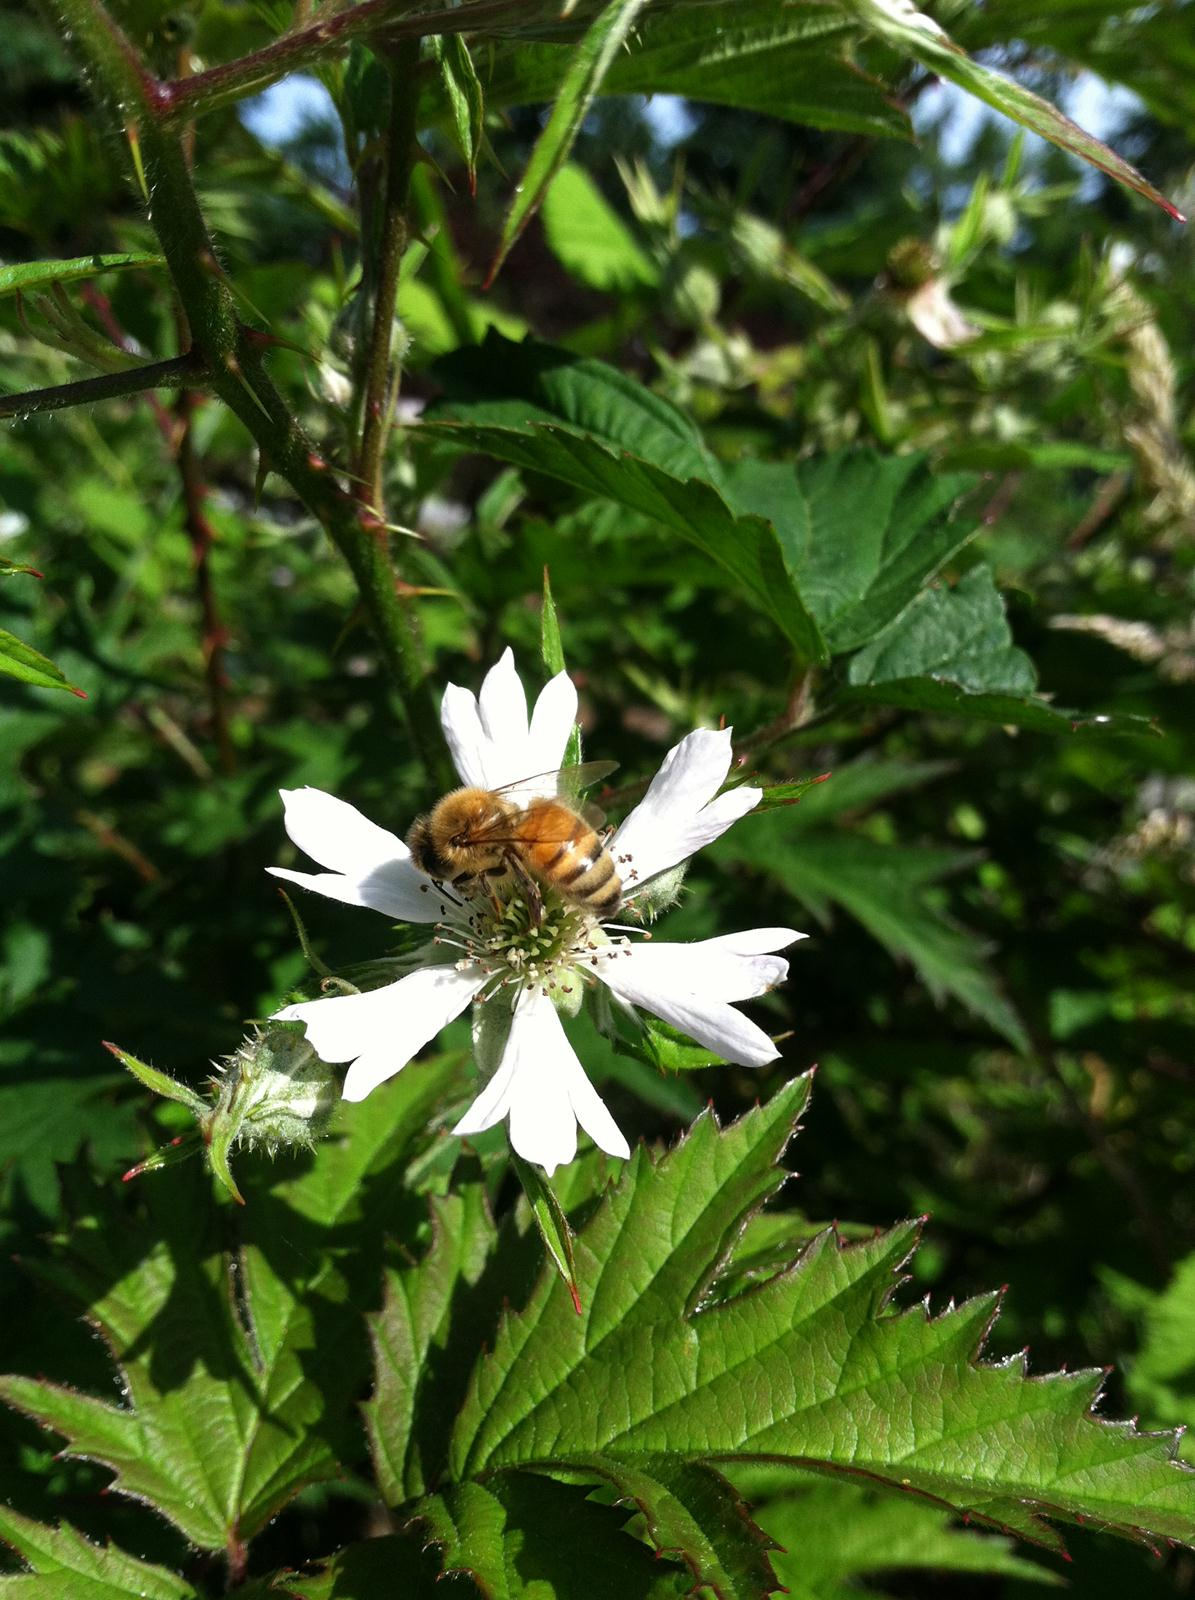 Bee on a bramble. Photo by Toby Mark.